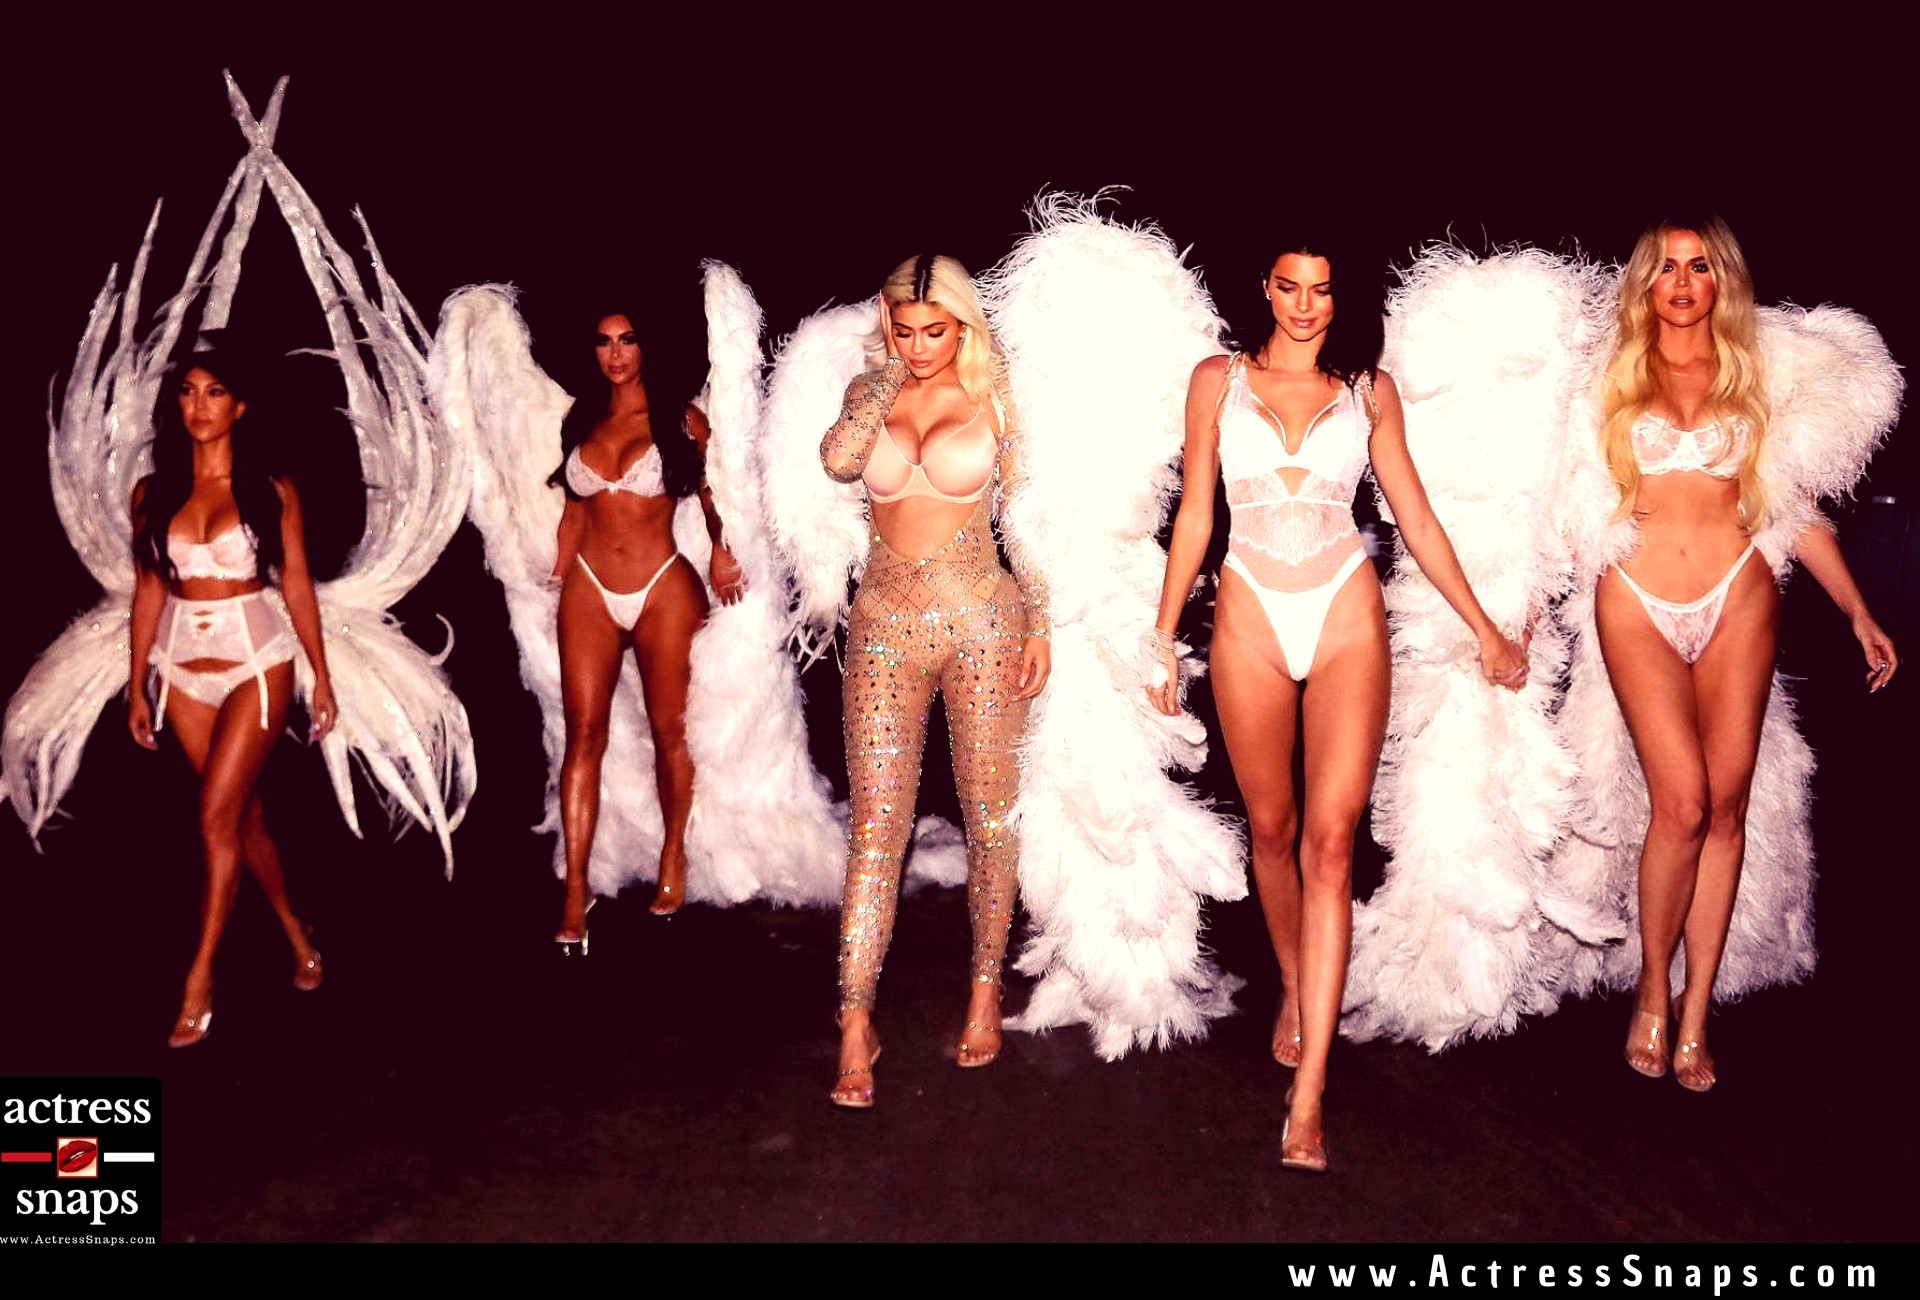 Sexy Kardashian Sisters at Halloween Costume Party - Sexy Actress Pictures | Hot Actress Pictures - ActressSnaps.com